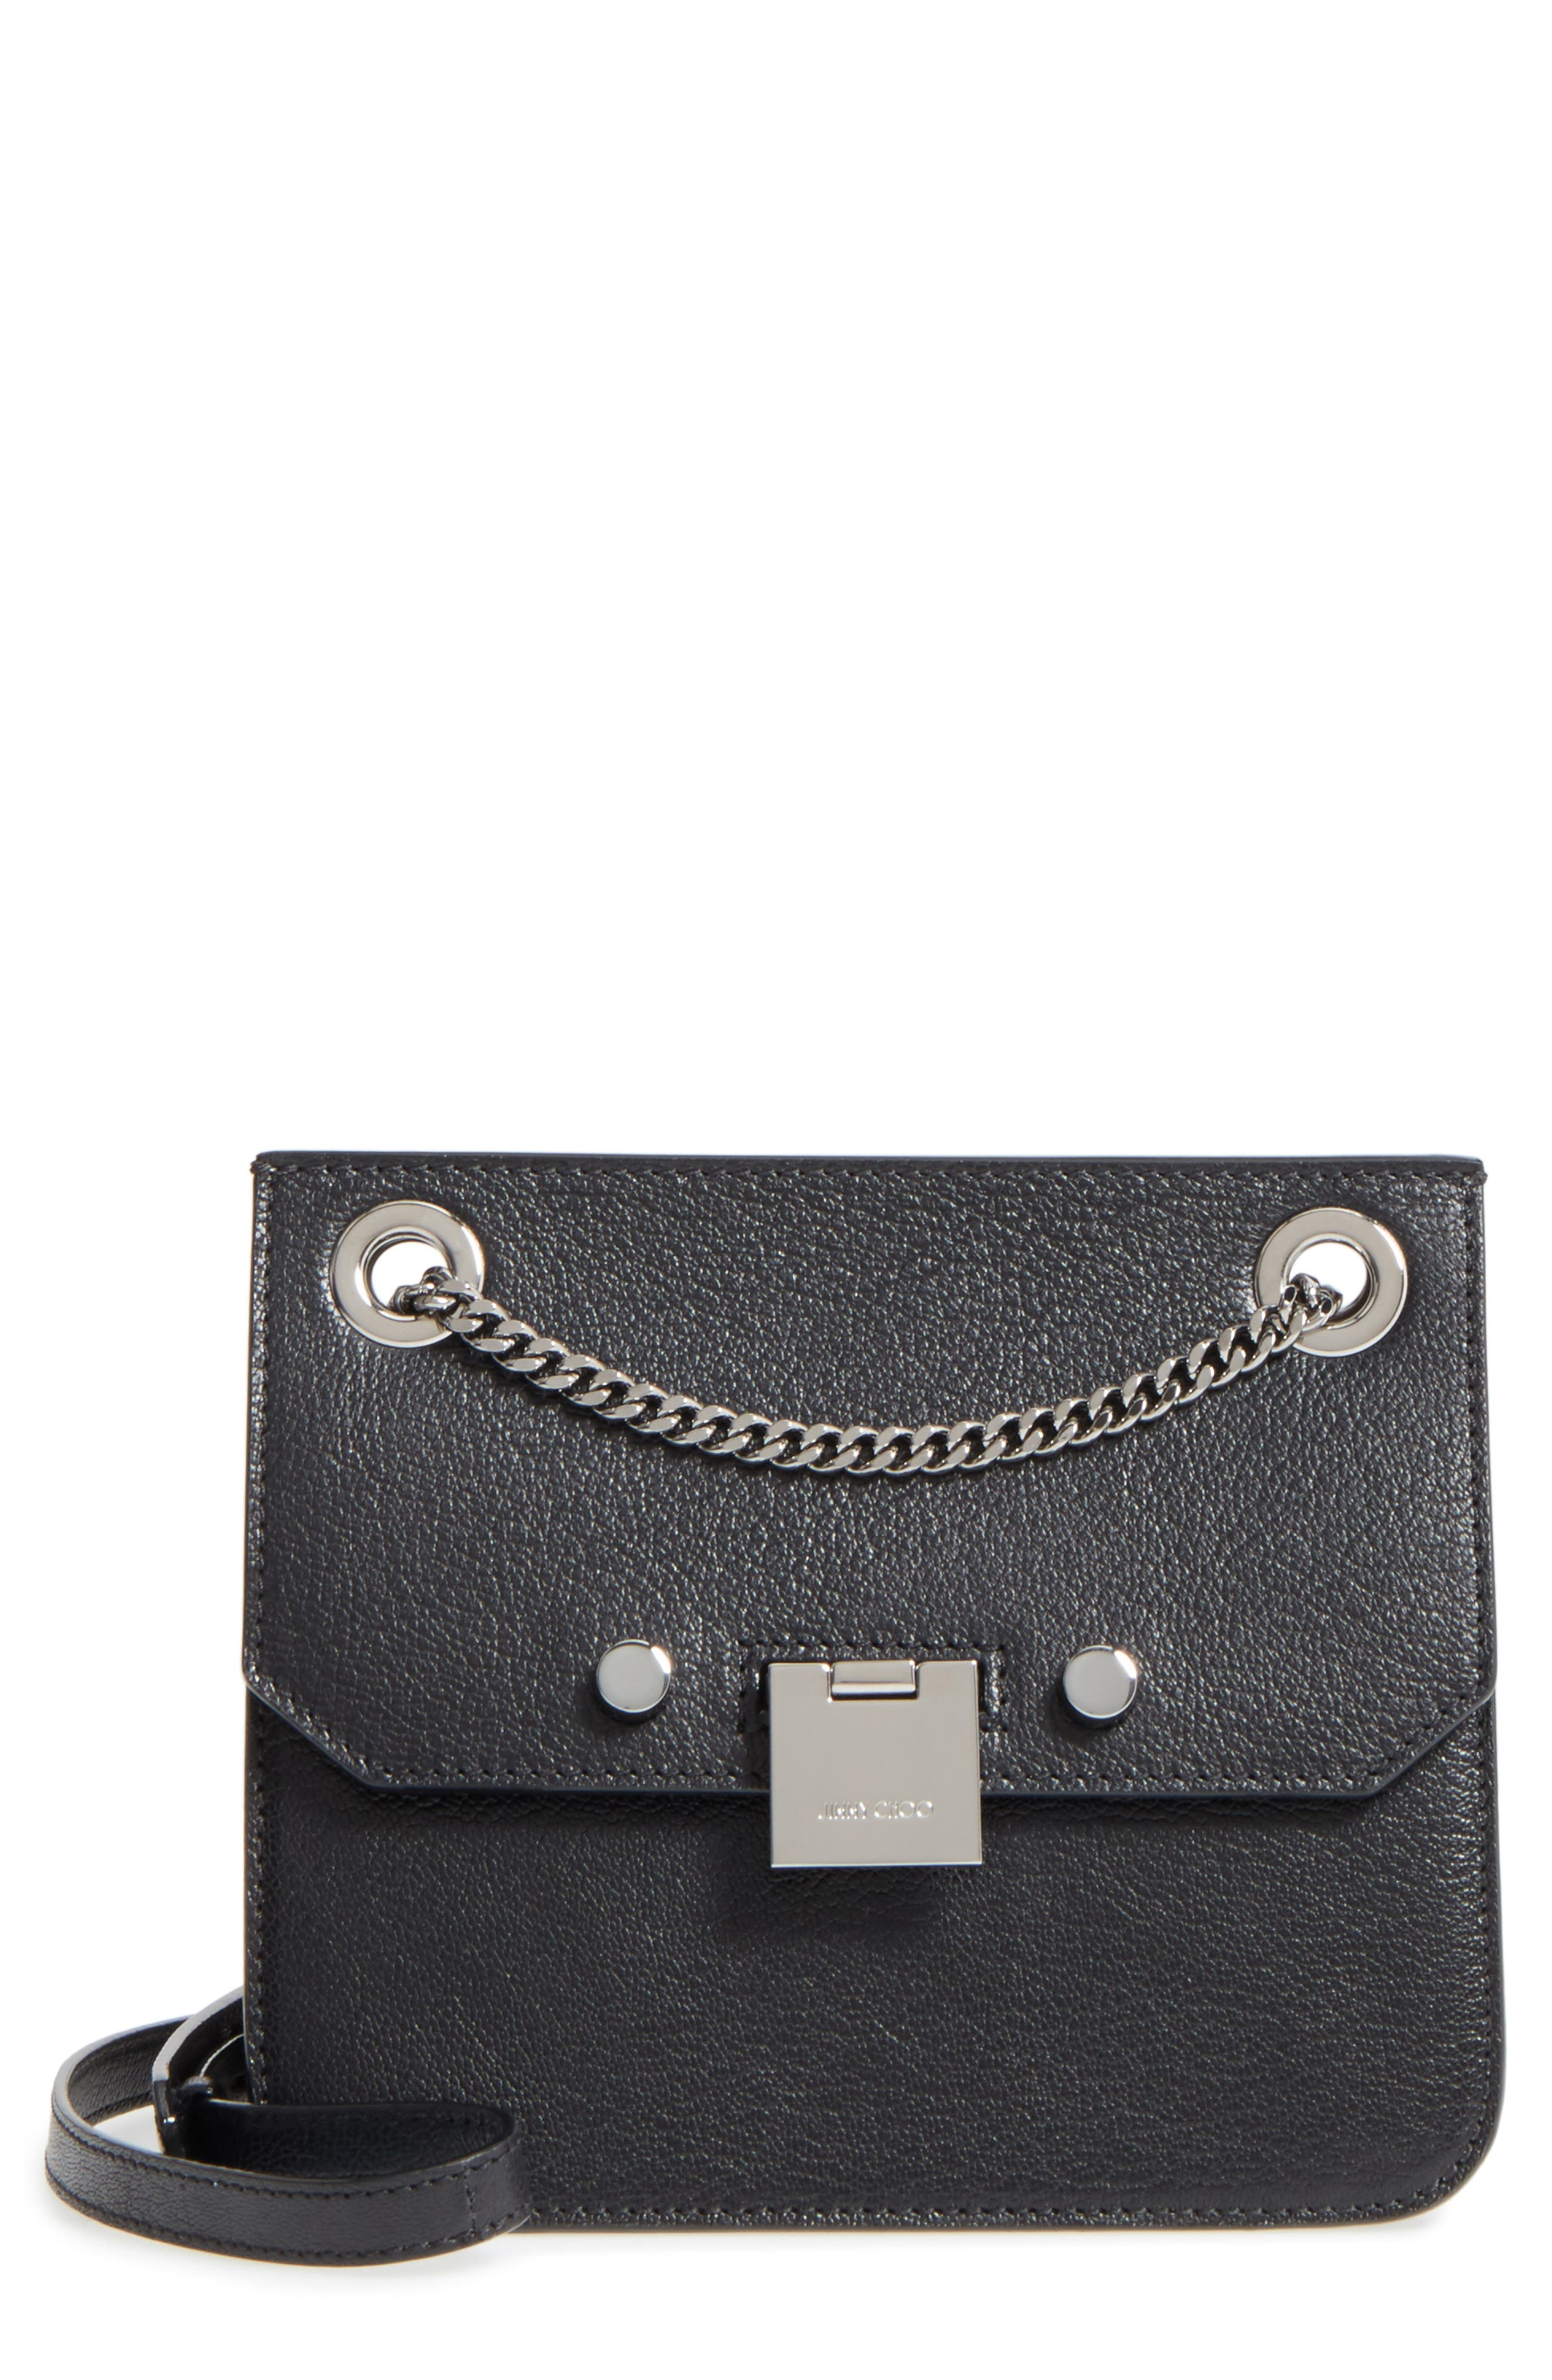 Rebel Leather Crossbody Bag,                             Main thumbnail 1, color,                             Black/ Gunmetal